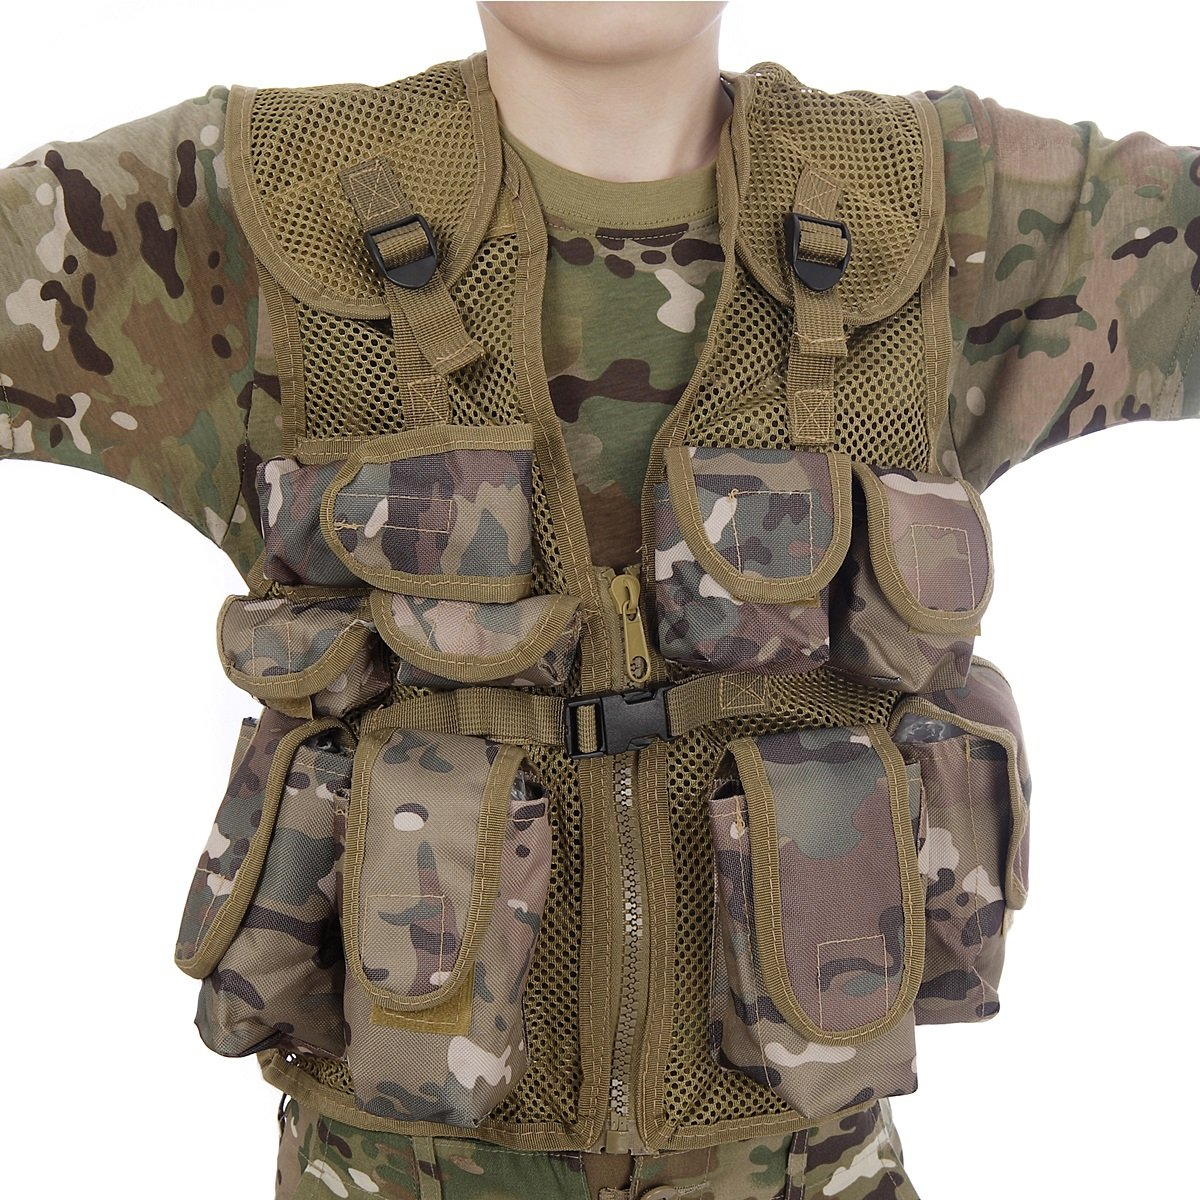 Kids Army All Terrain Camo Combat Vest - Fits Ages 5-13 Yrs KAS